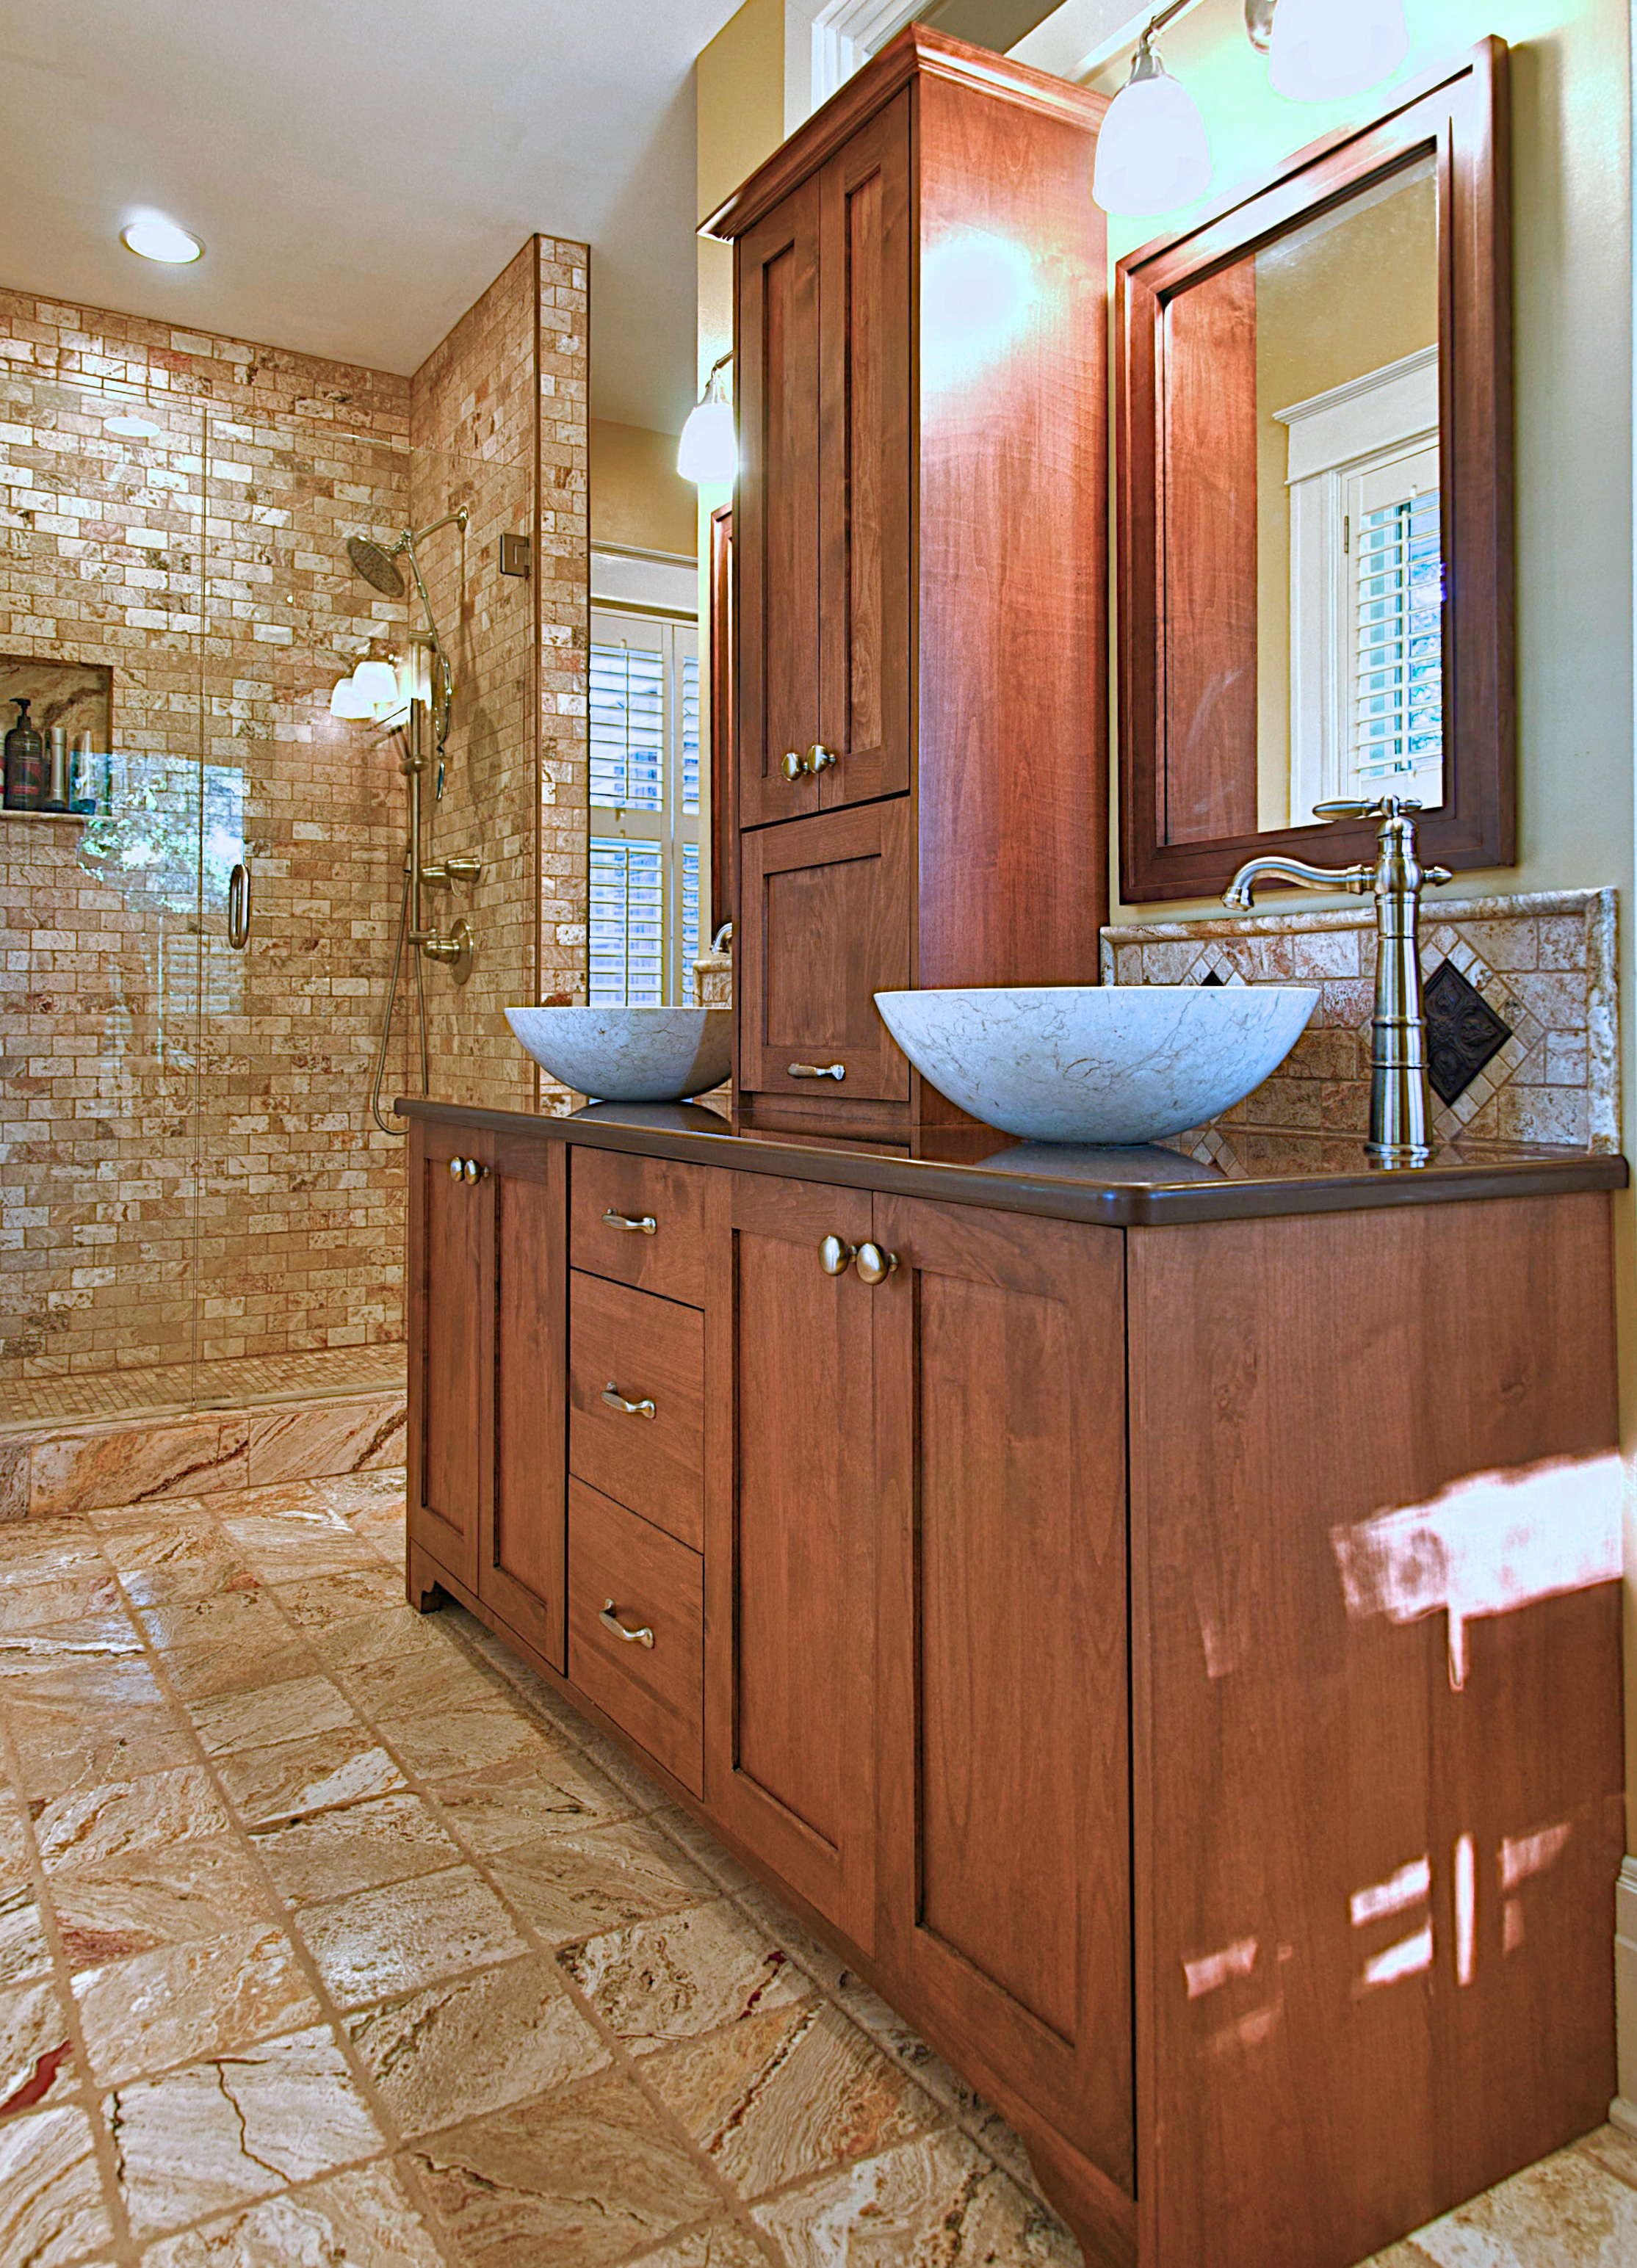 Premium grade, wooden powder room cabinetry